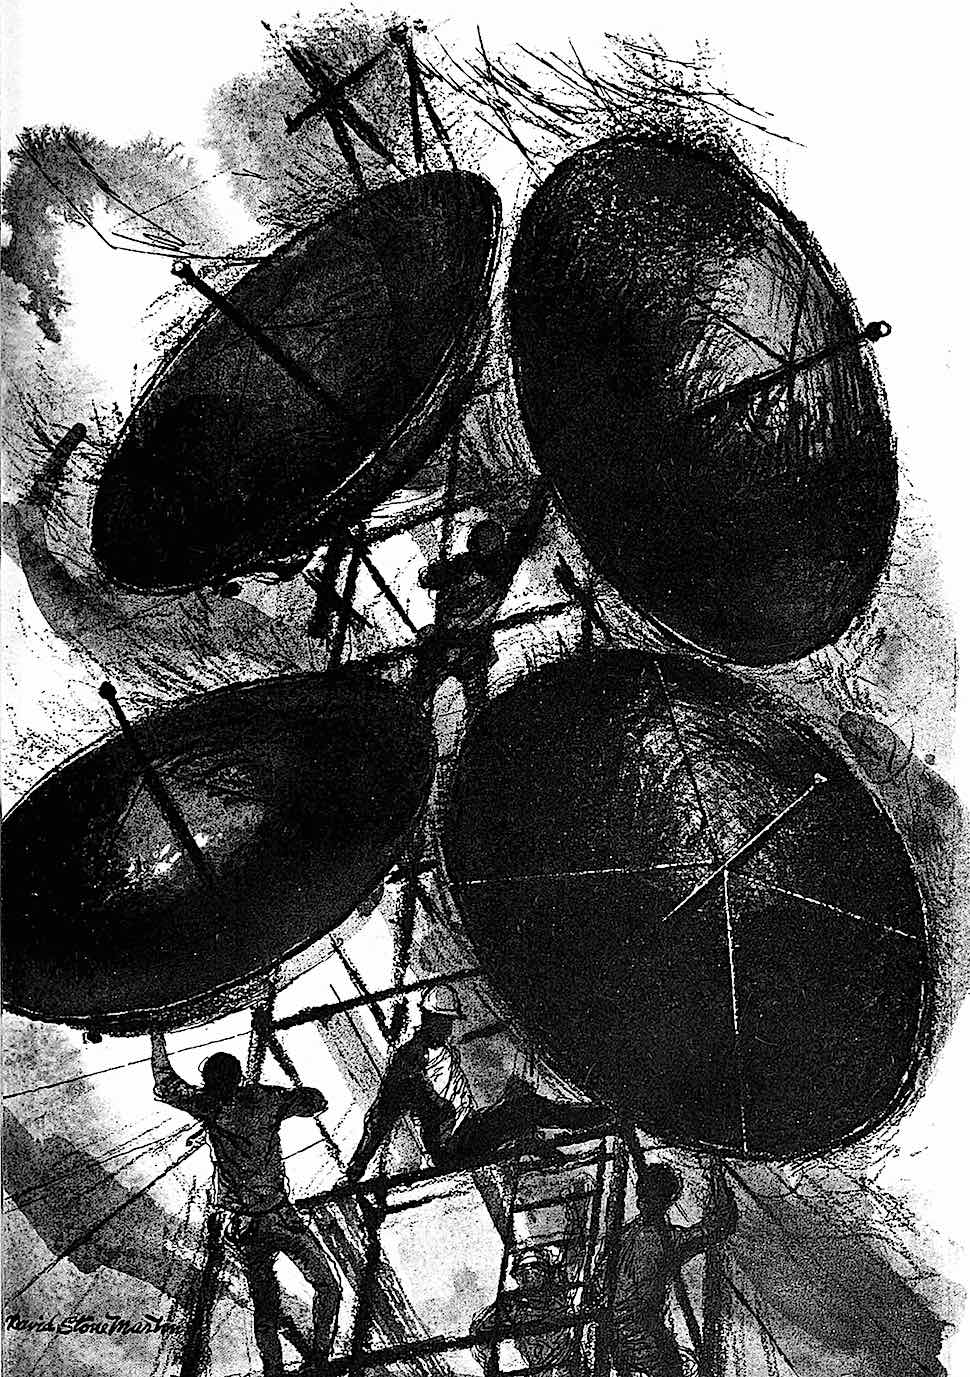 a 1964 David Stone Martin illustration of men in silhouette working on a tower